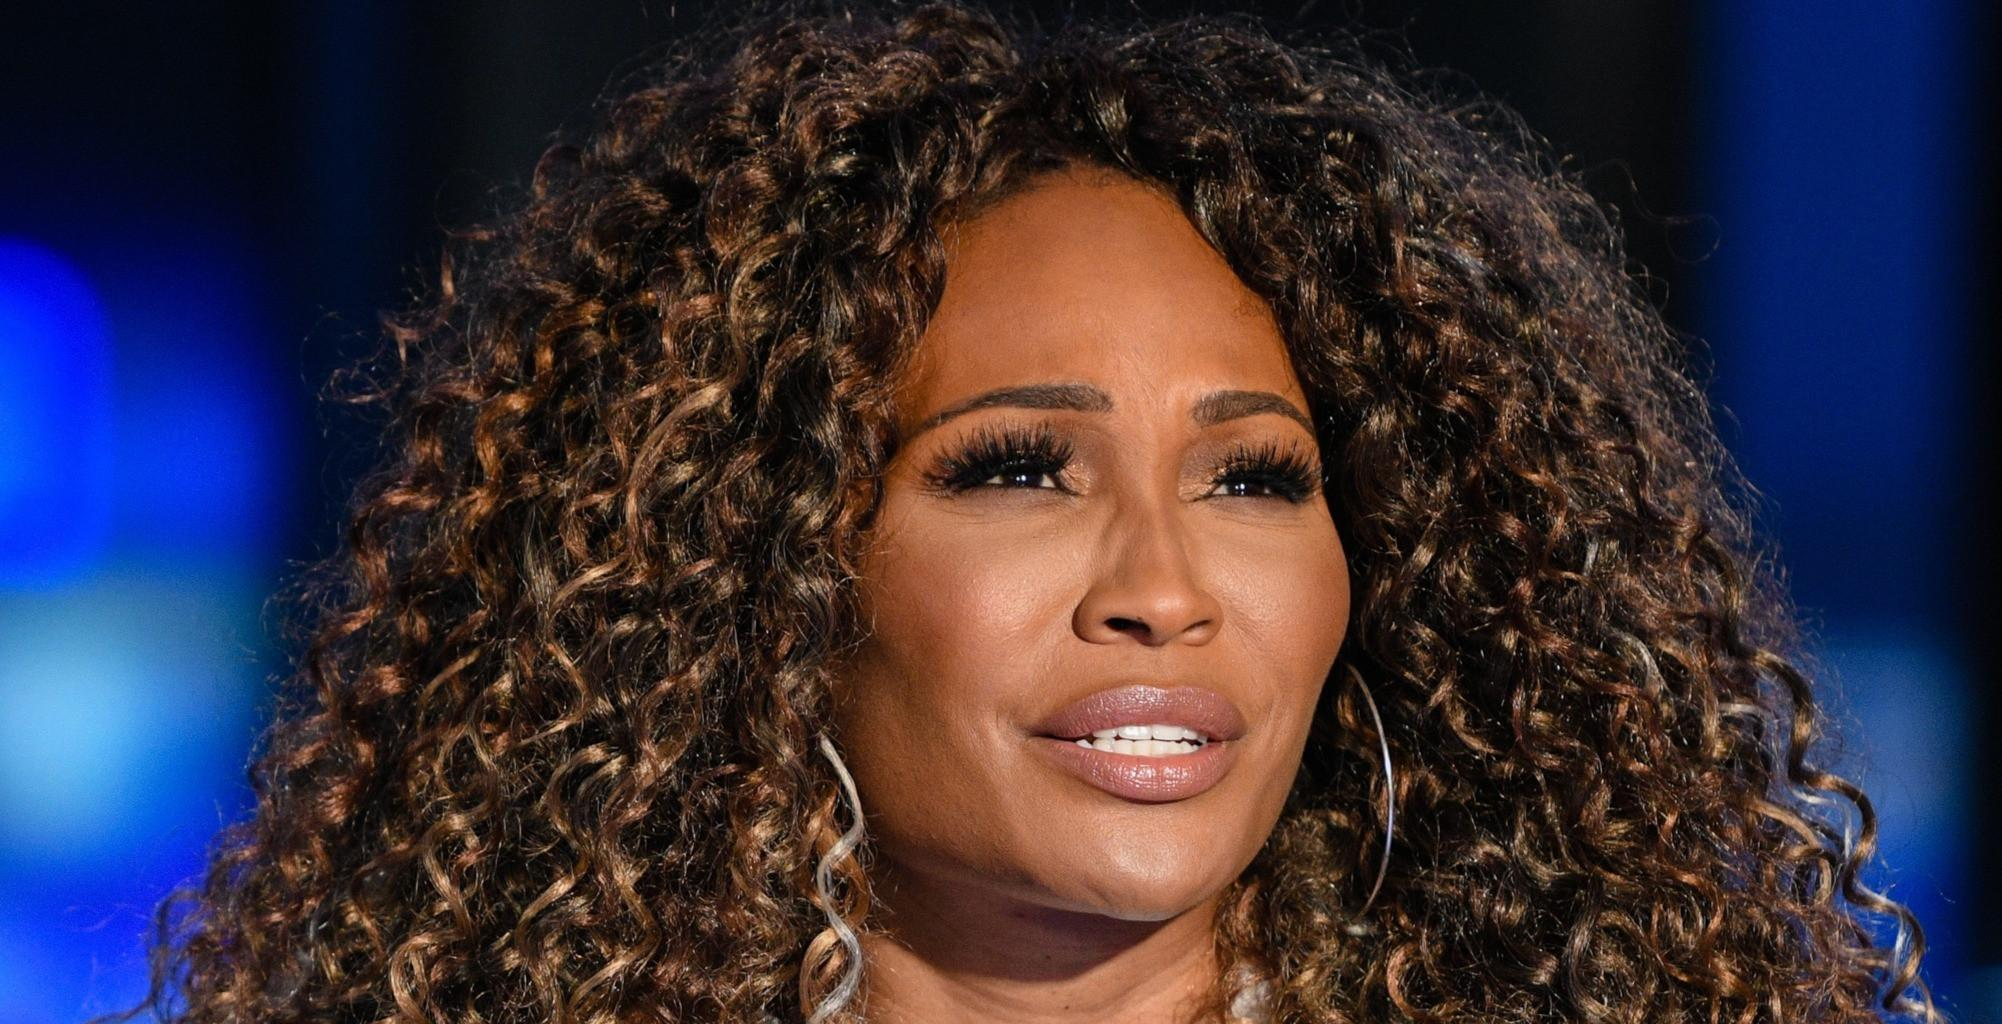 Cynthia Bailey Revealed The Enormous BLM Mural Painted On The Street Near The White House - See The Clip